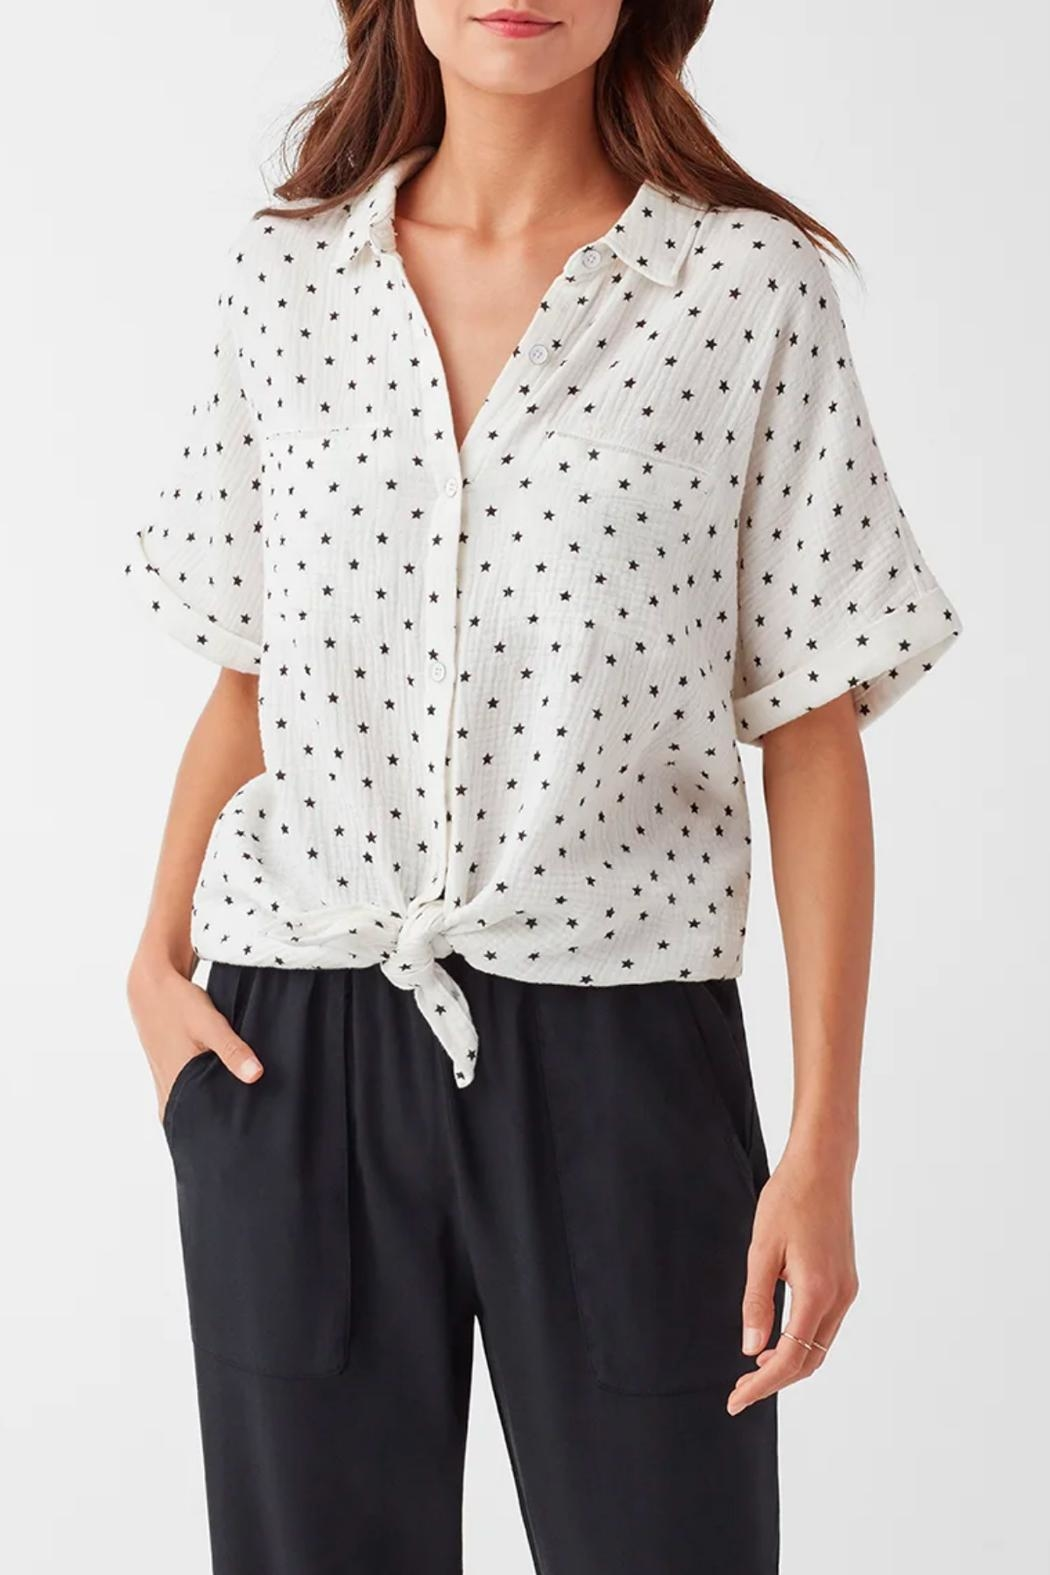 Splendid Star Print Shirt - Front Cropped Image